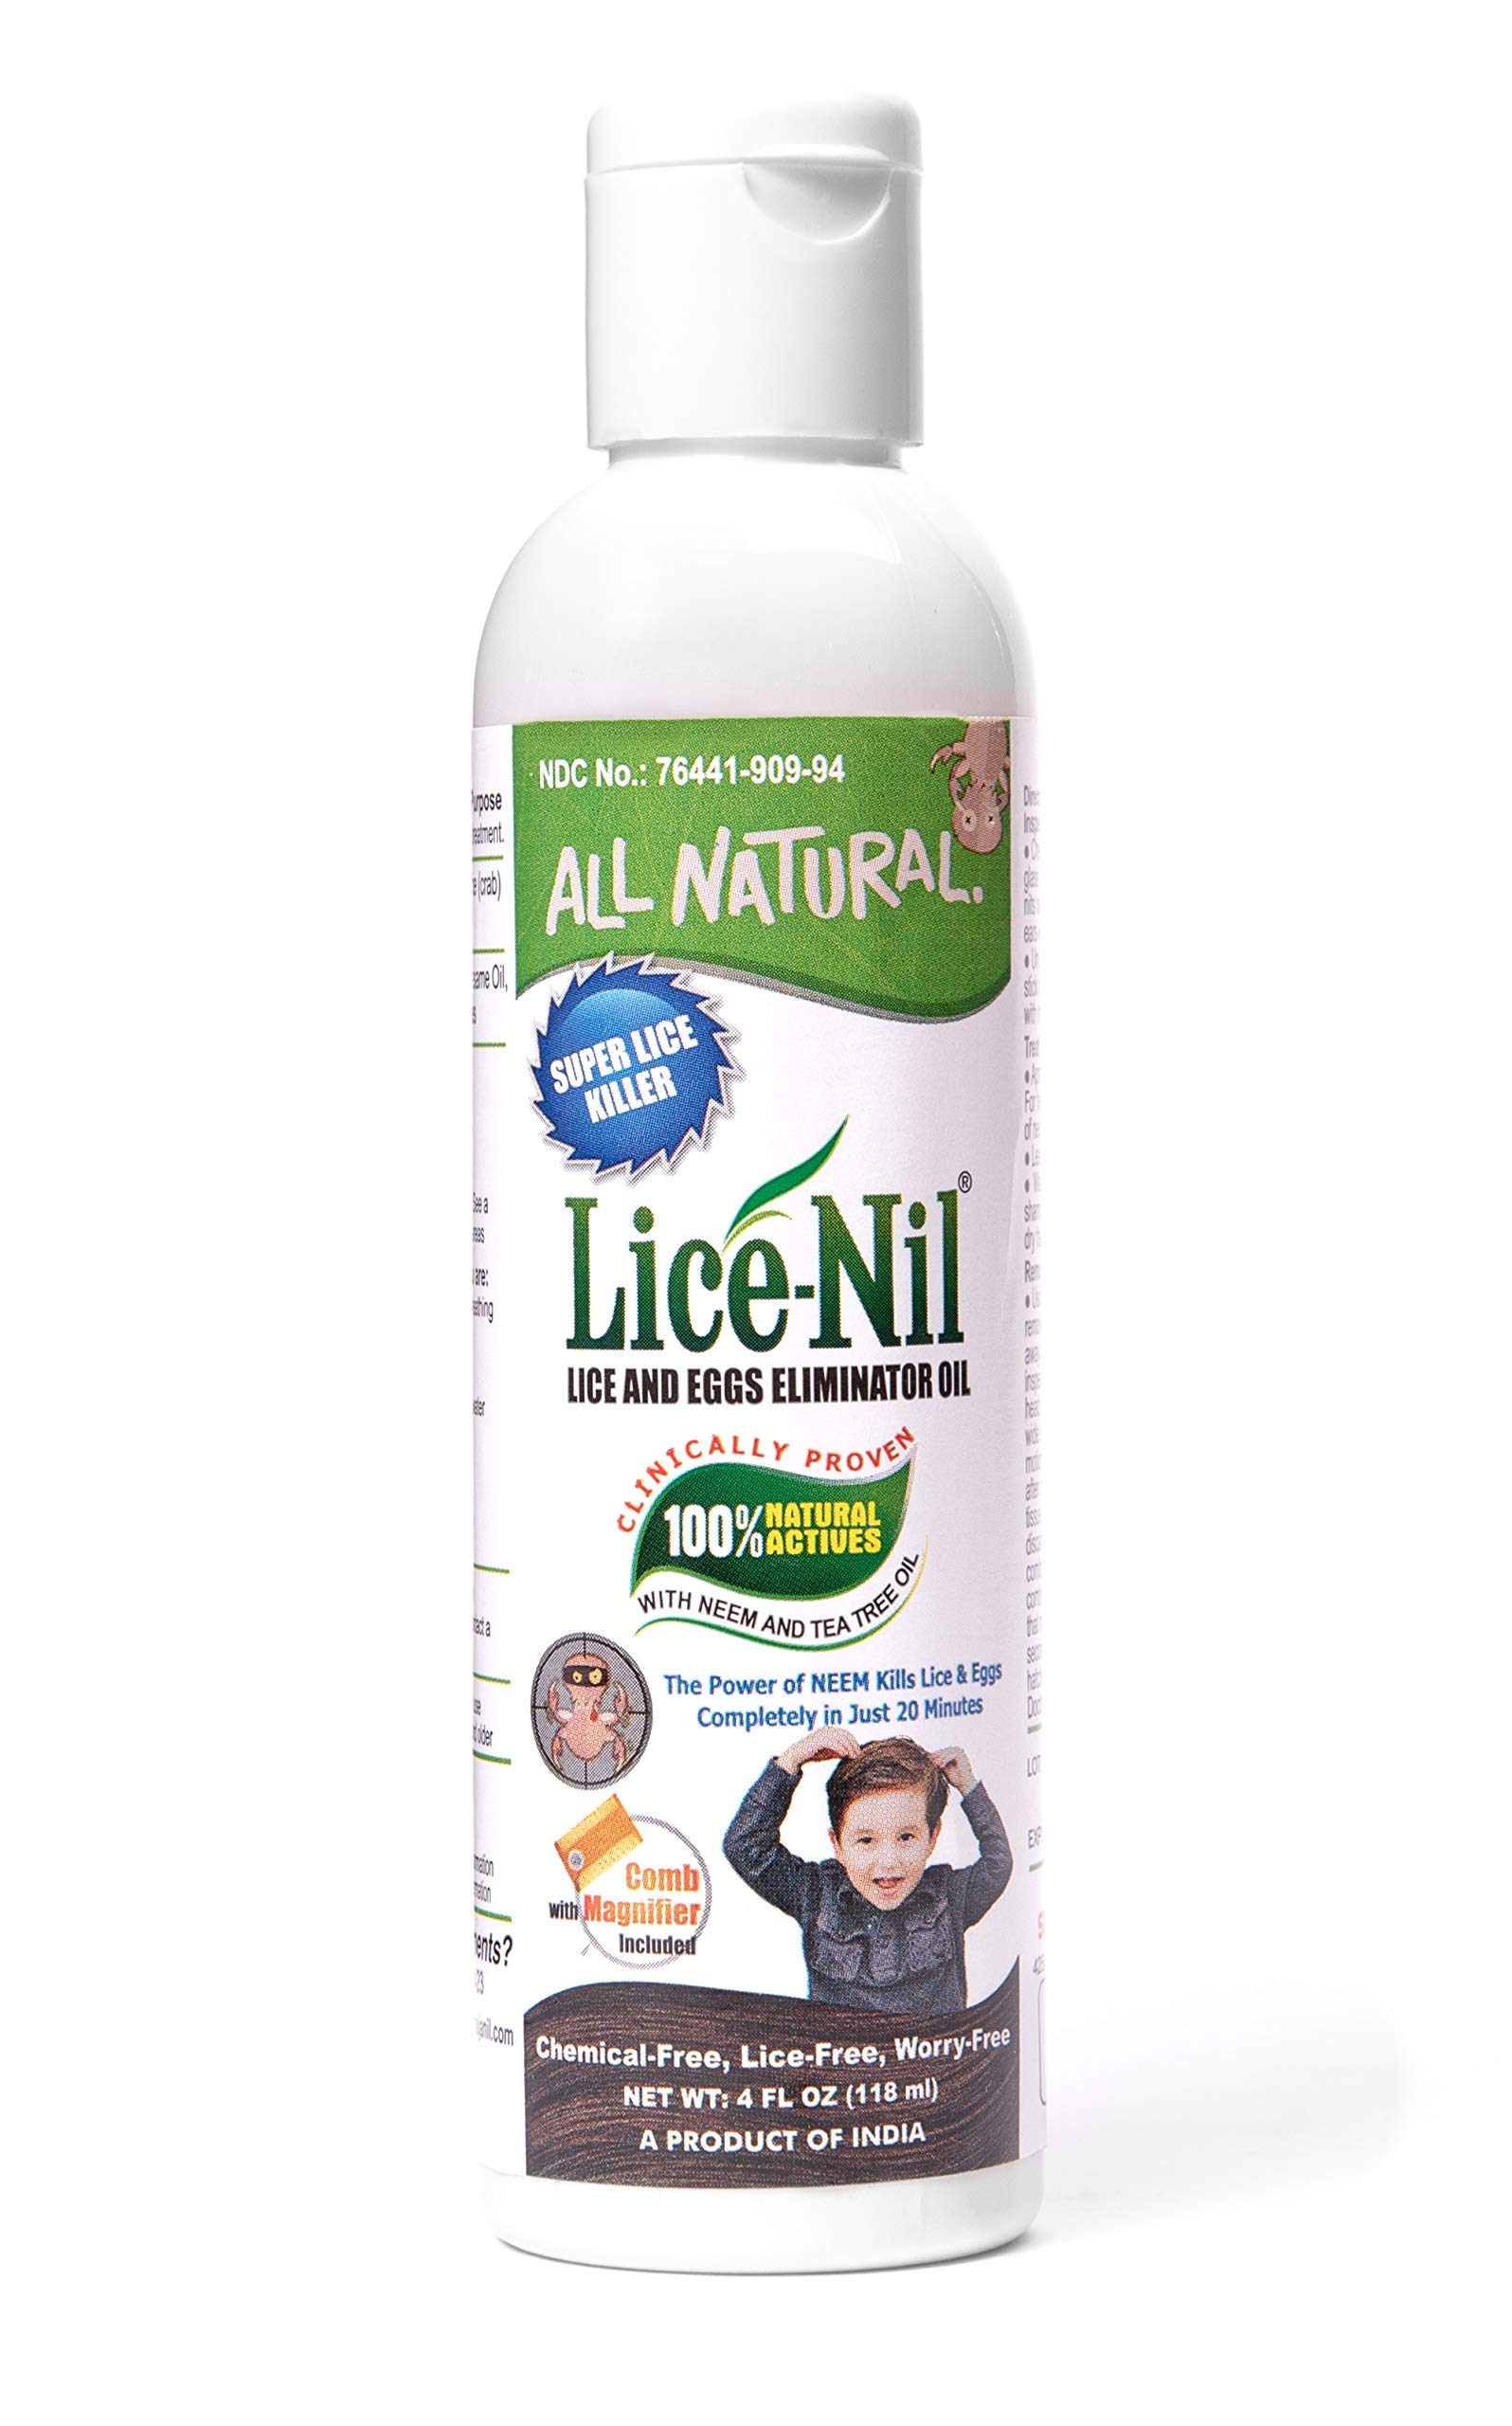 Lice-Nil - Natural Head Lice Treatment Oil | 4 oz by Lice-Nil